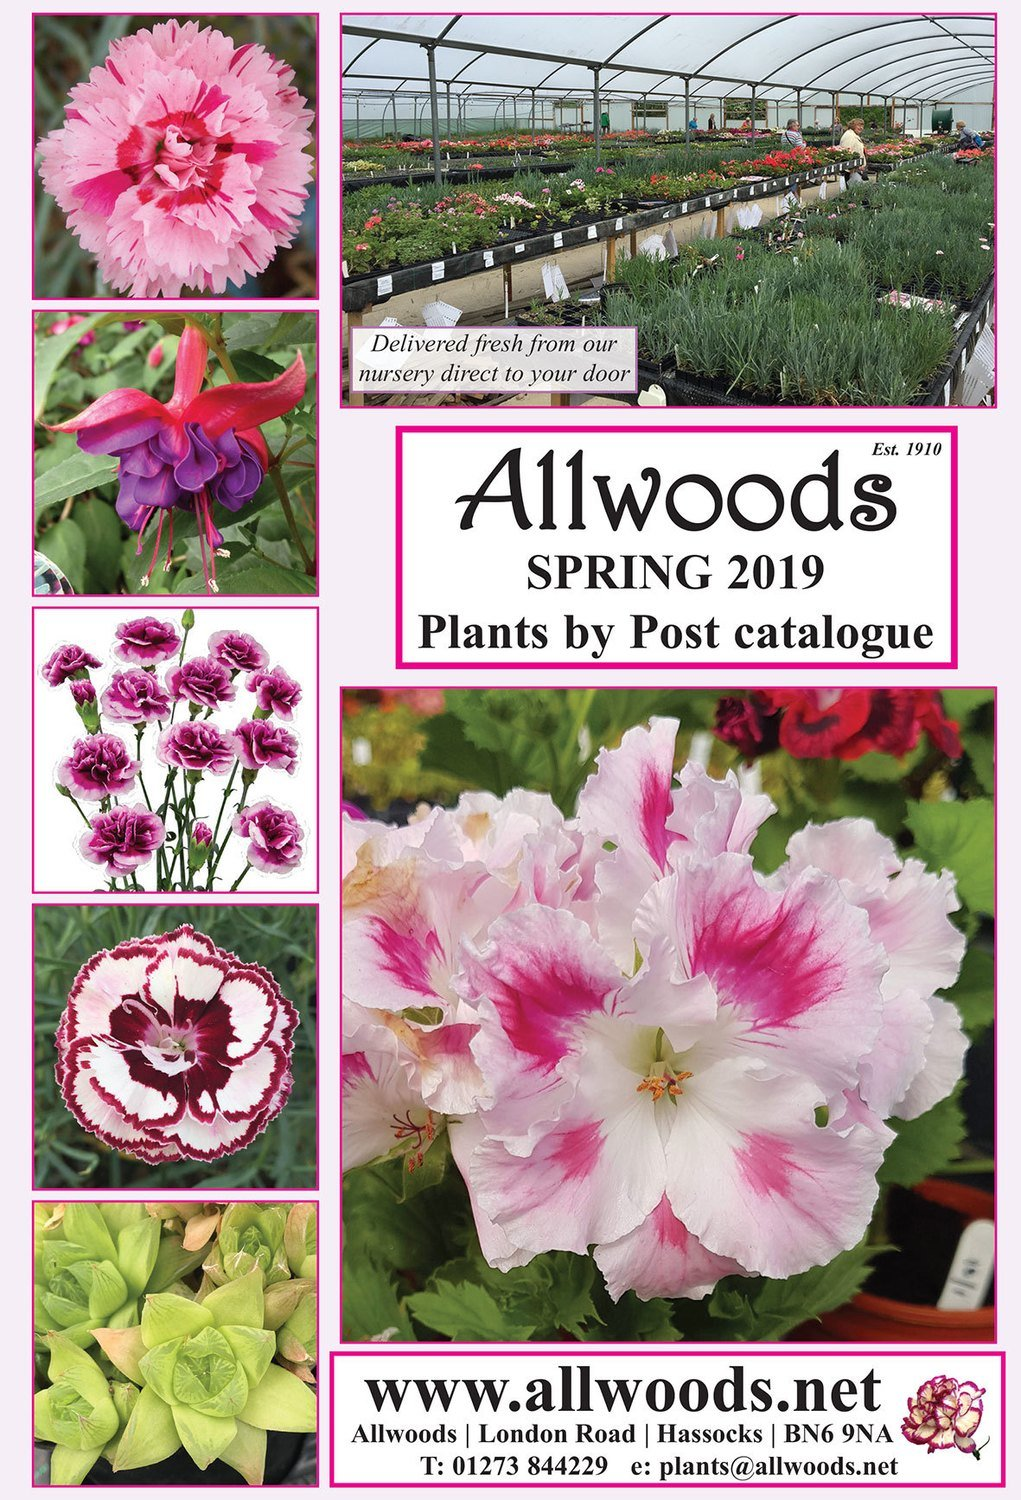 Allwoods Latest Spring Mail Order Plant Catalogue